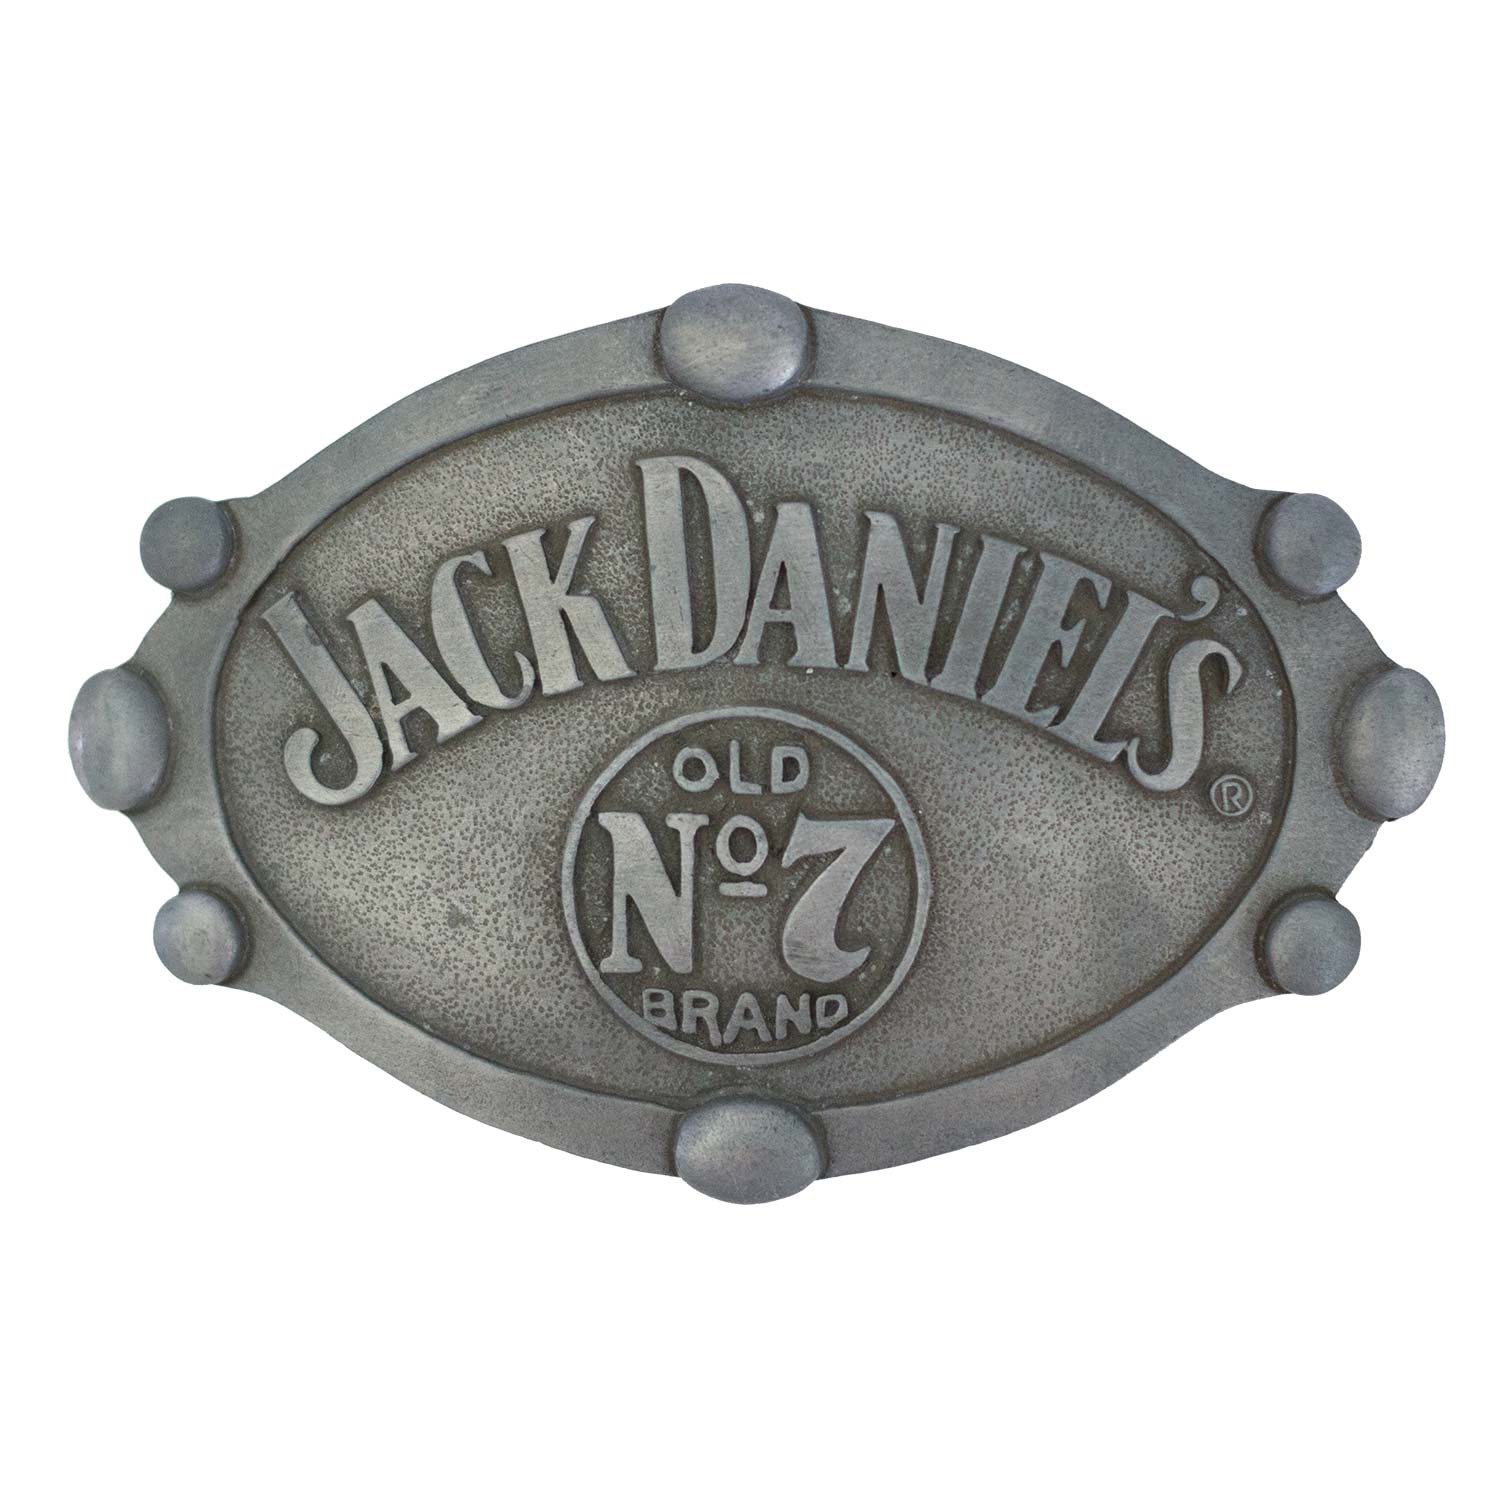 Jack Daniels Oval Belt Buckle